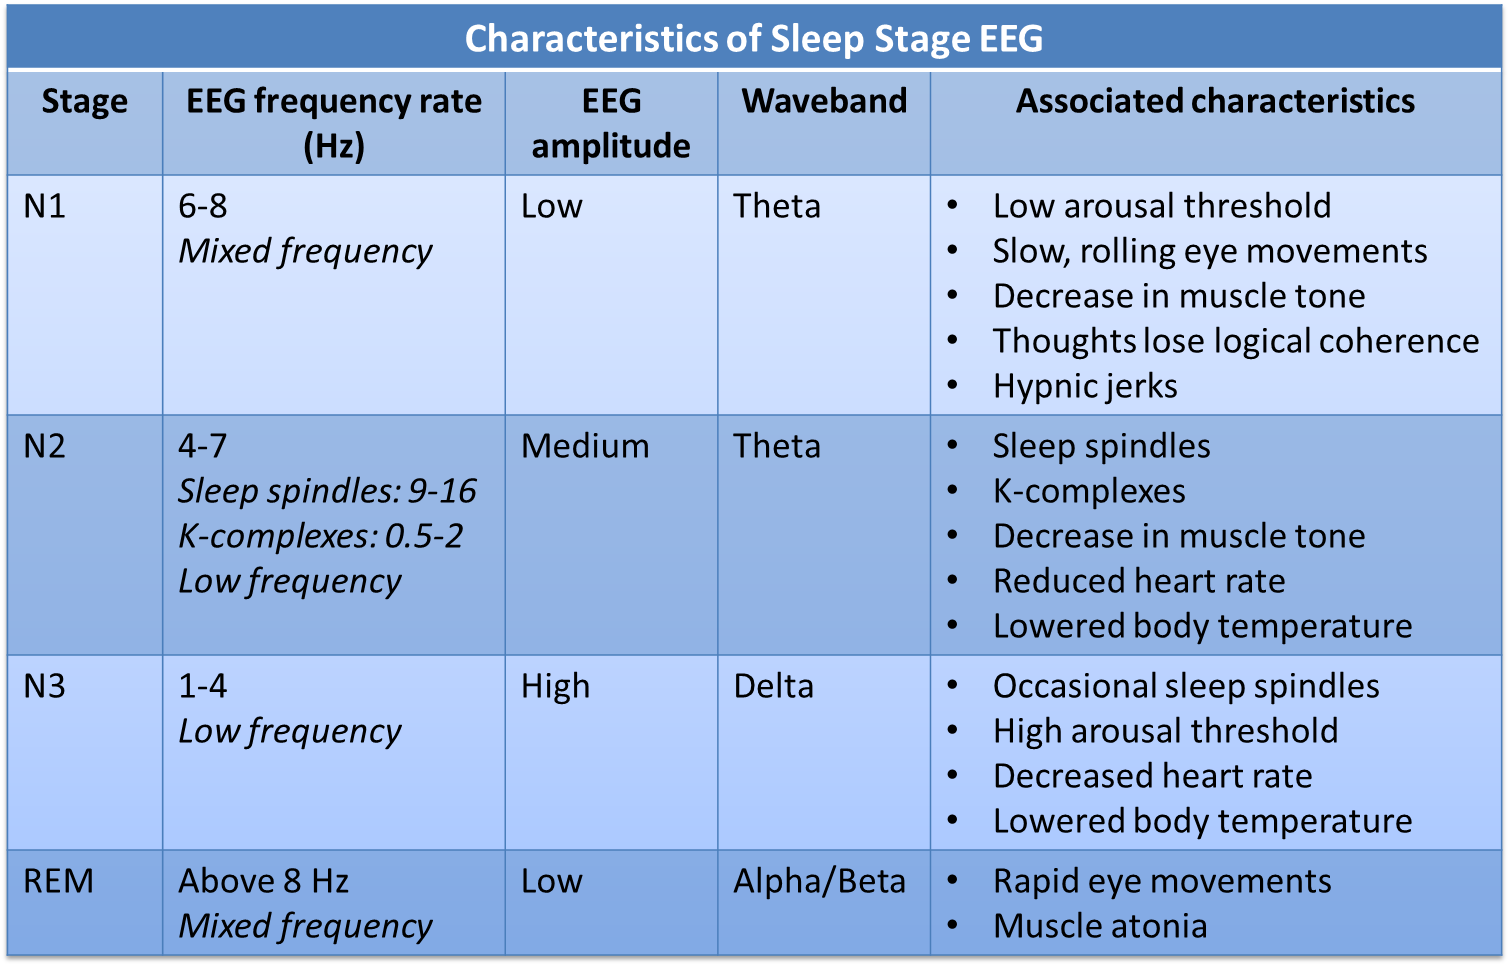 Table of characteristics of sleep stages